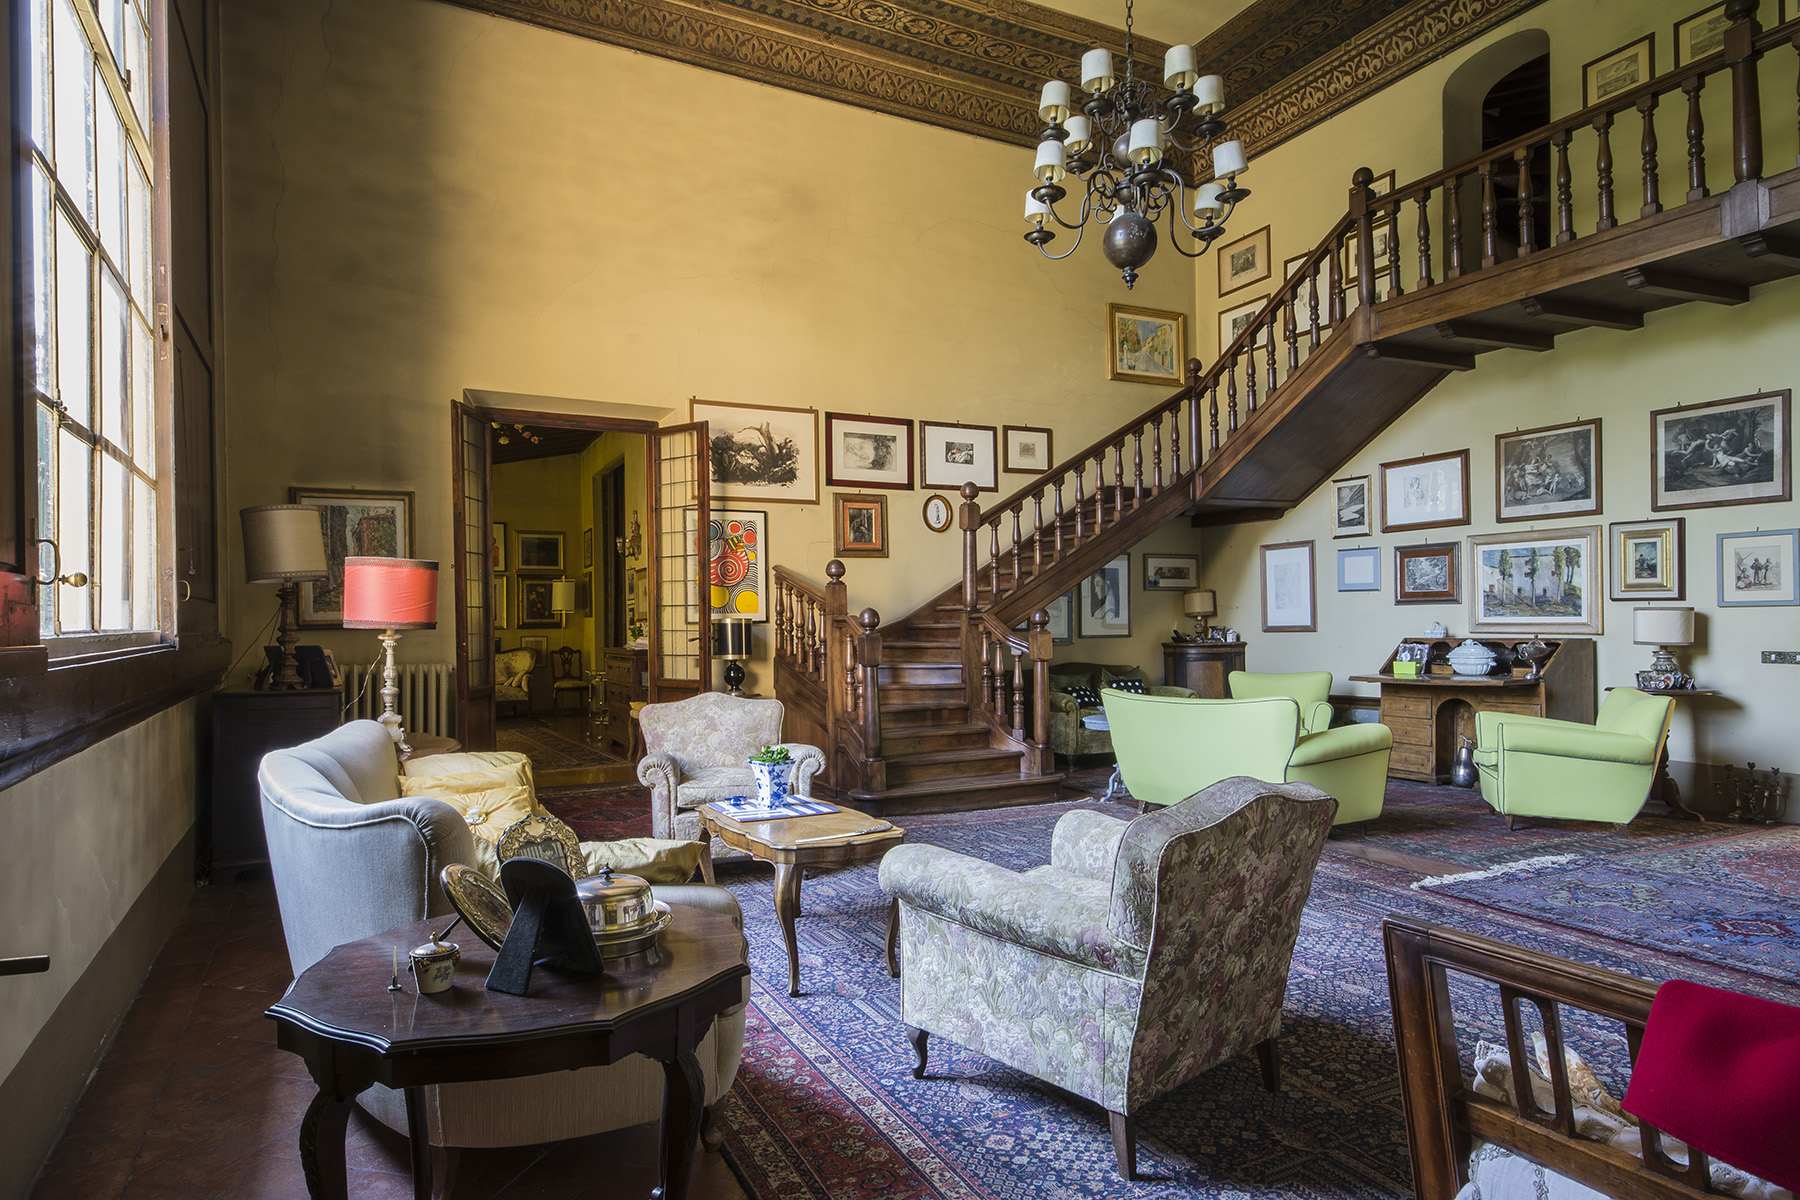 Property Of 19th century villa in the heart of Florence